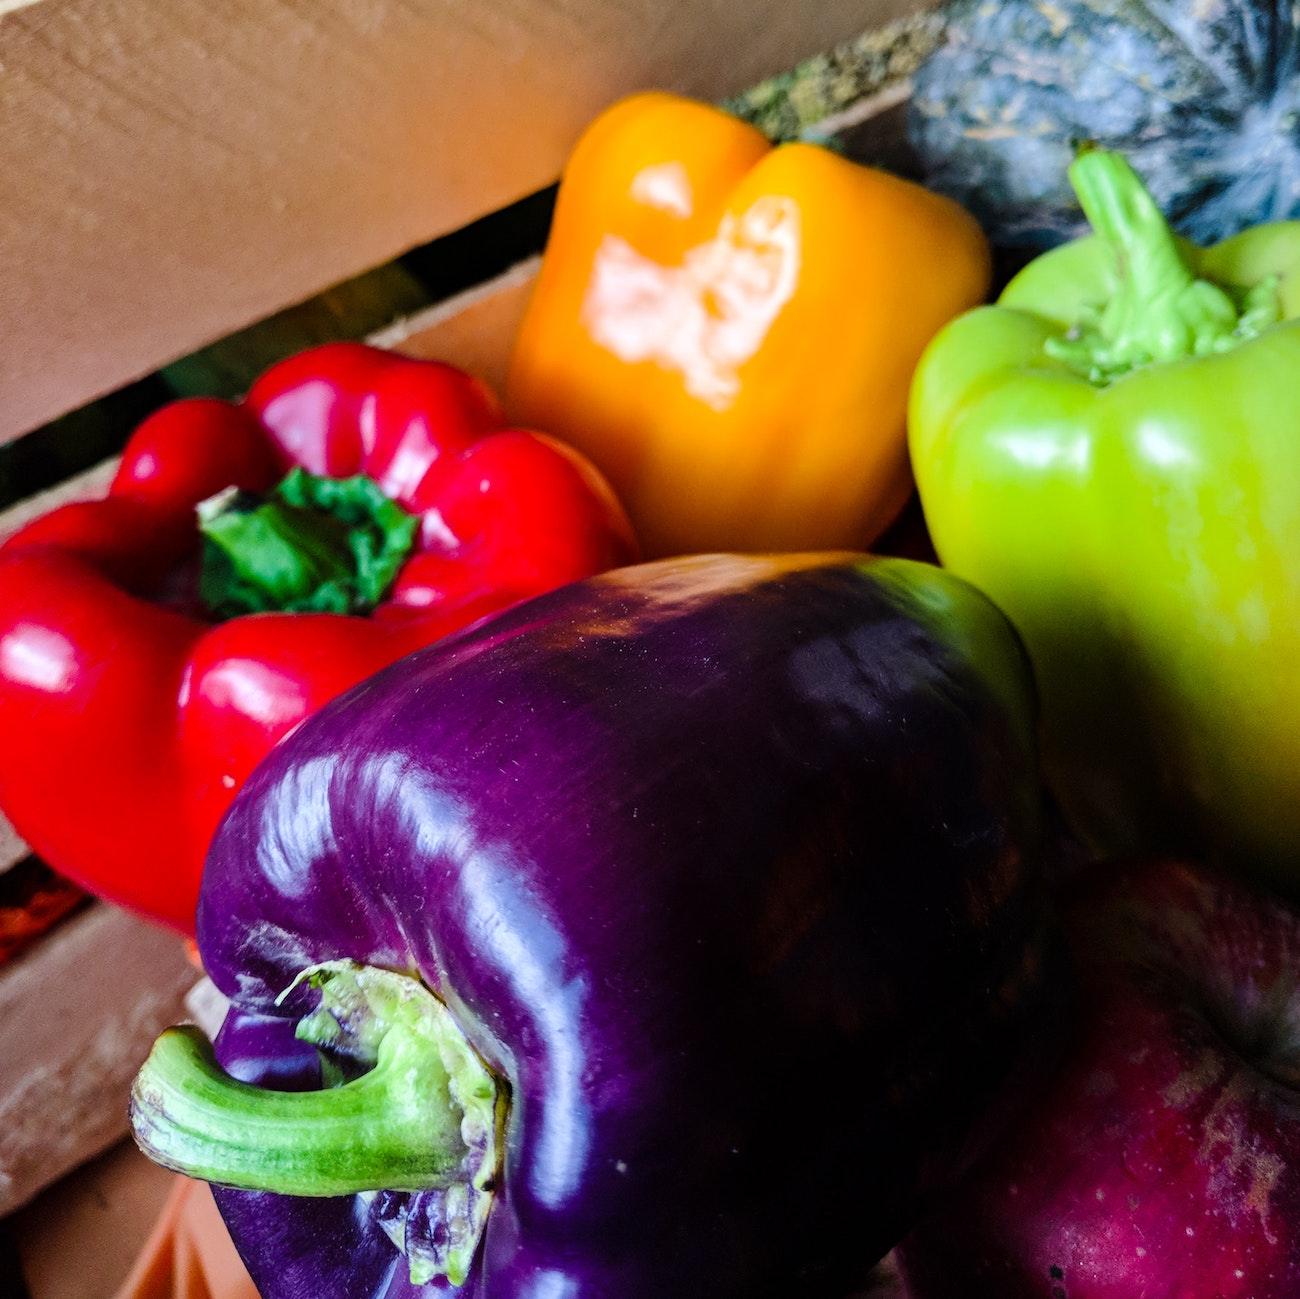 Plant based diet featuring a purple bell pepper, red bell pepper, orange bell pepper, and green bell pepper.